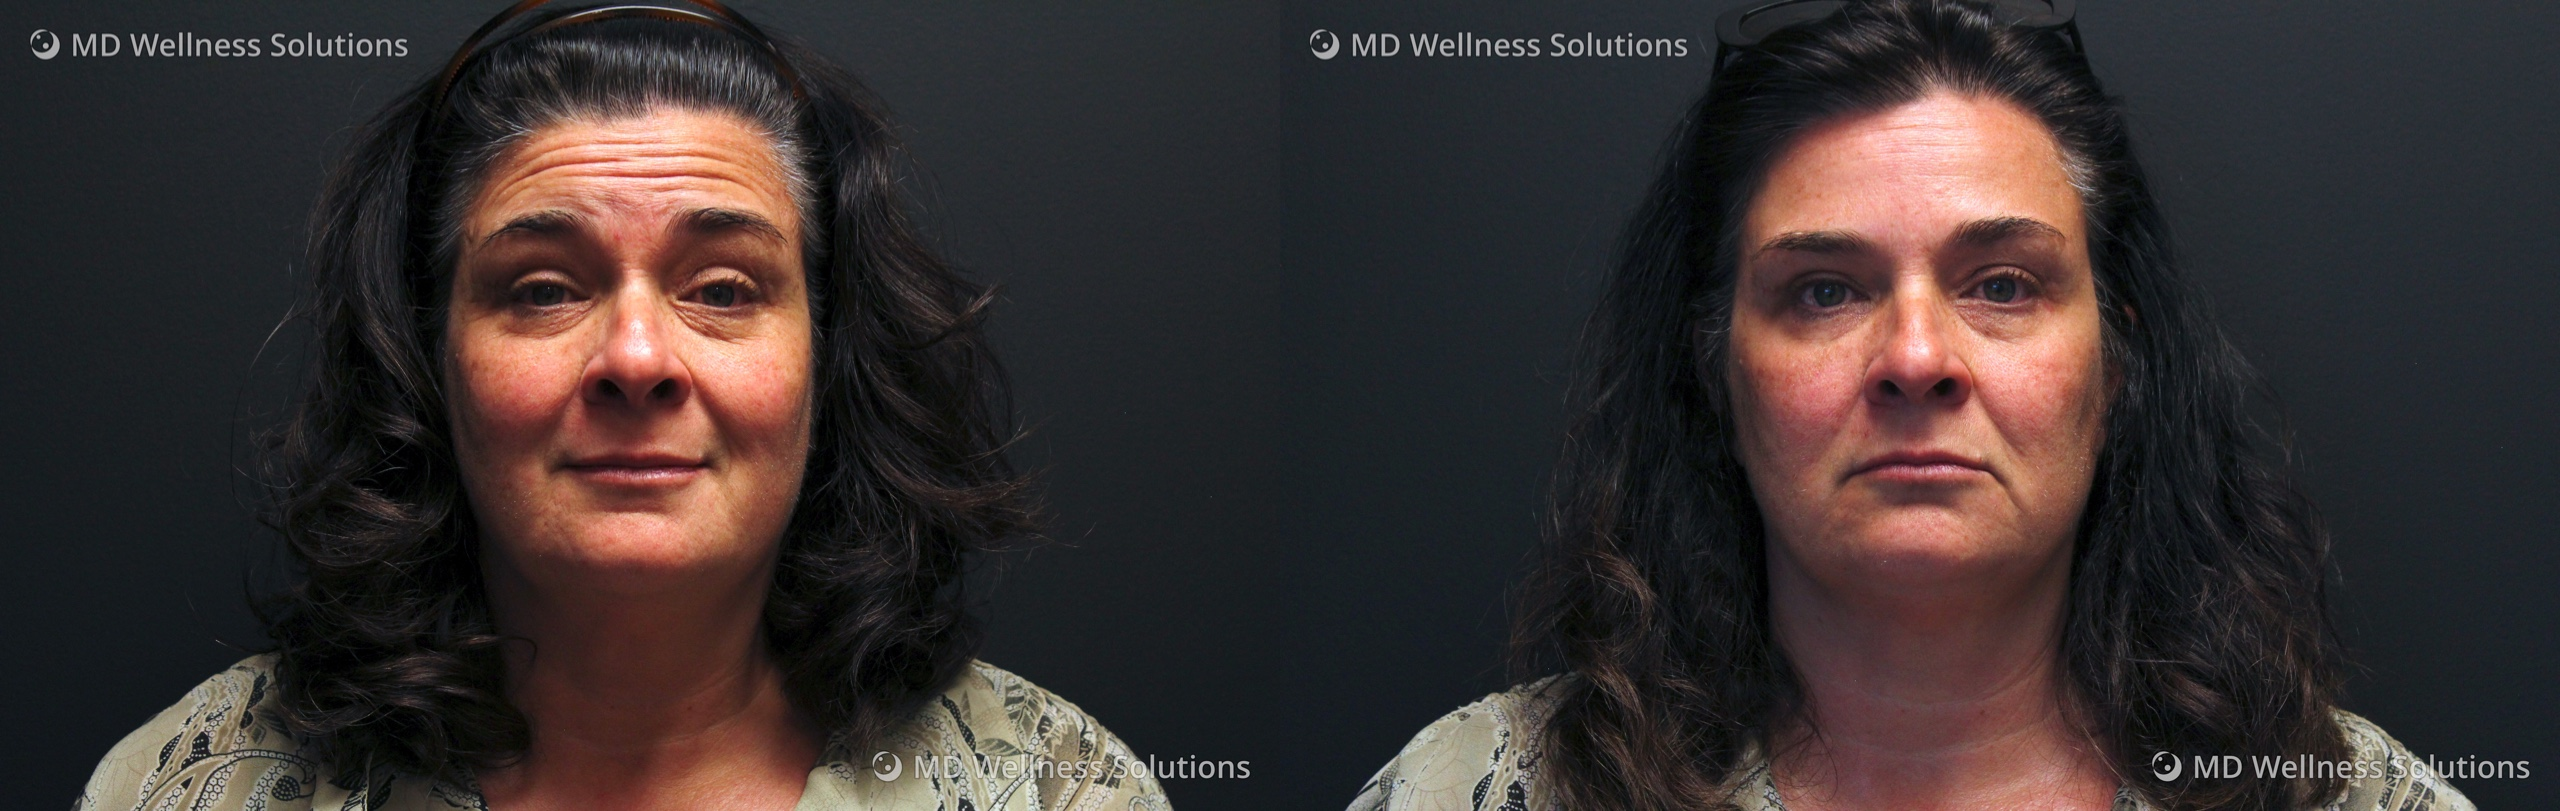 45-54 year old woman before and after neurotoxin and dermal filler treatment